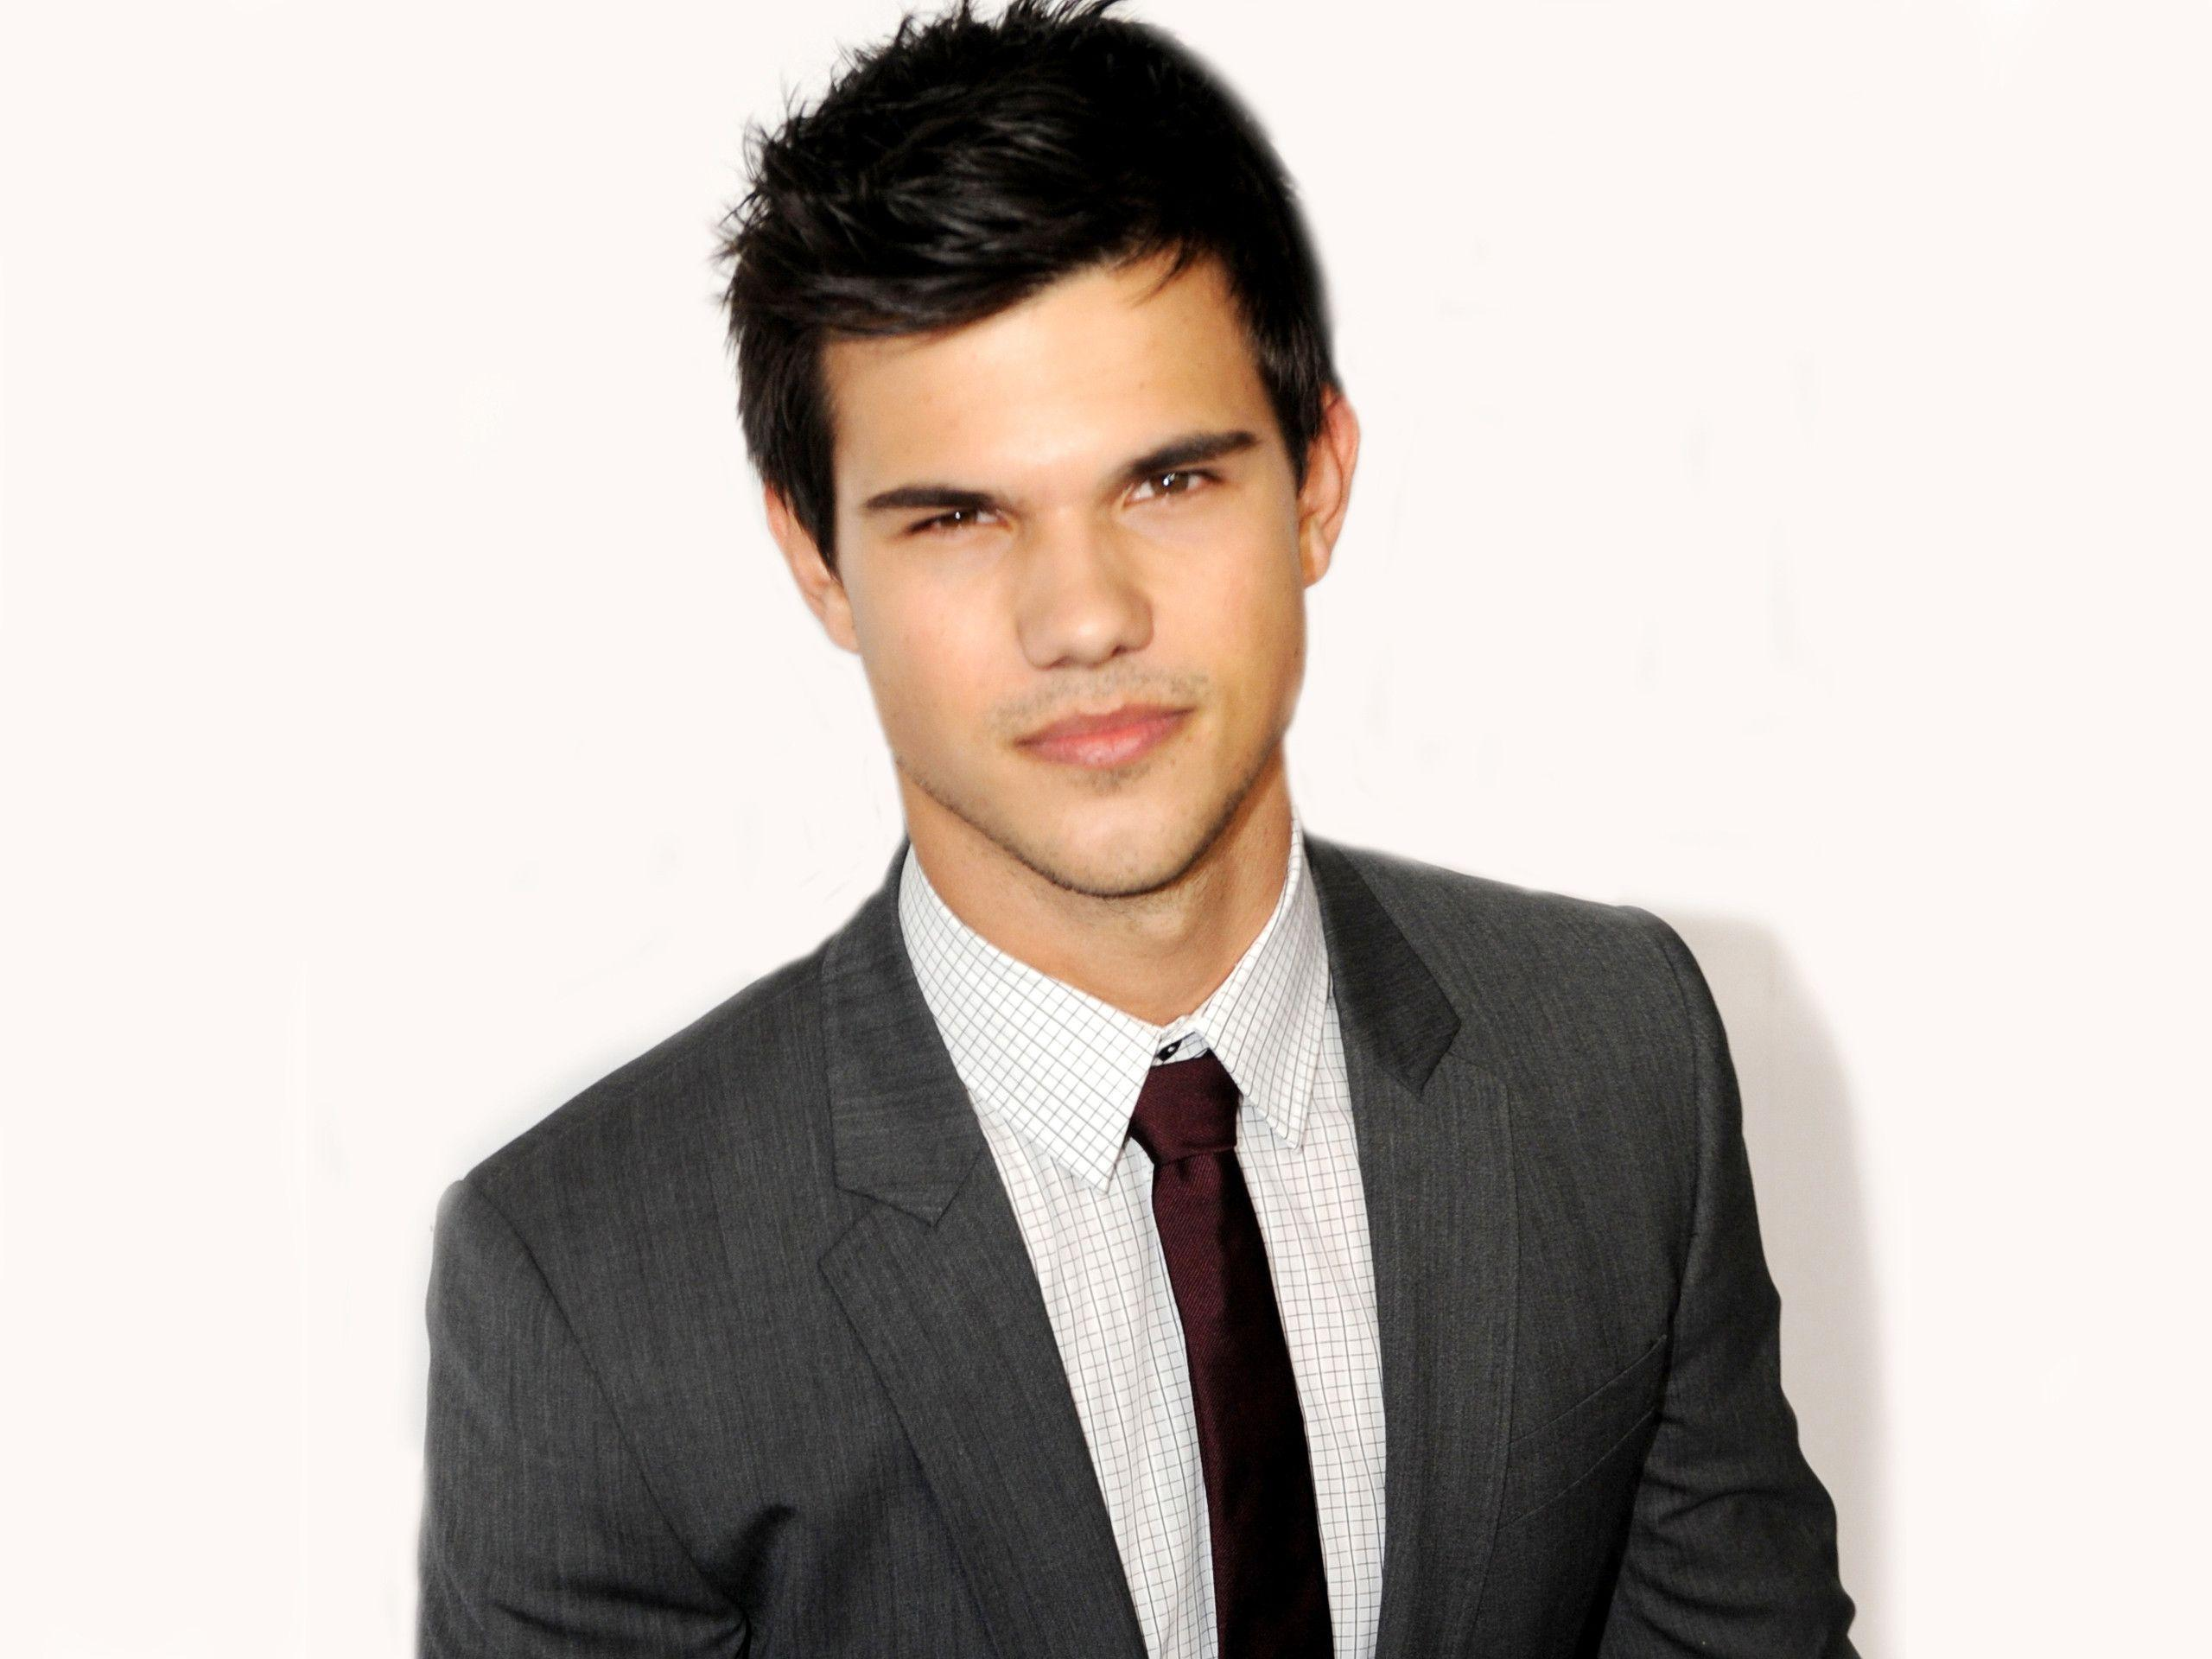 Taylor Lautner Backgrounds